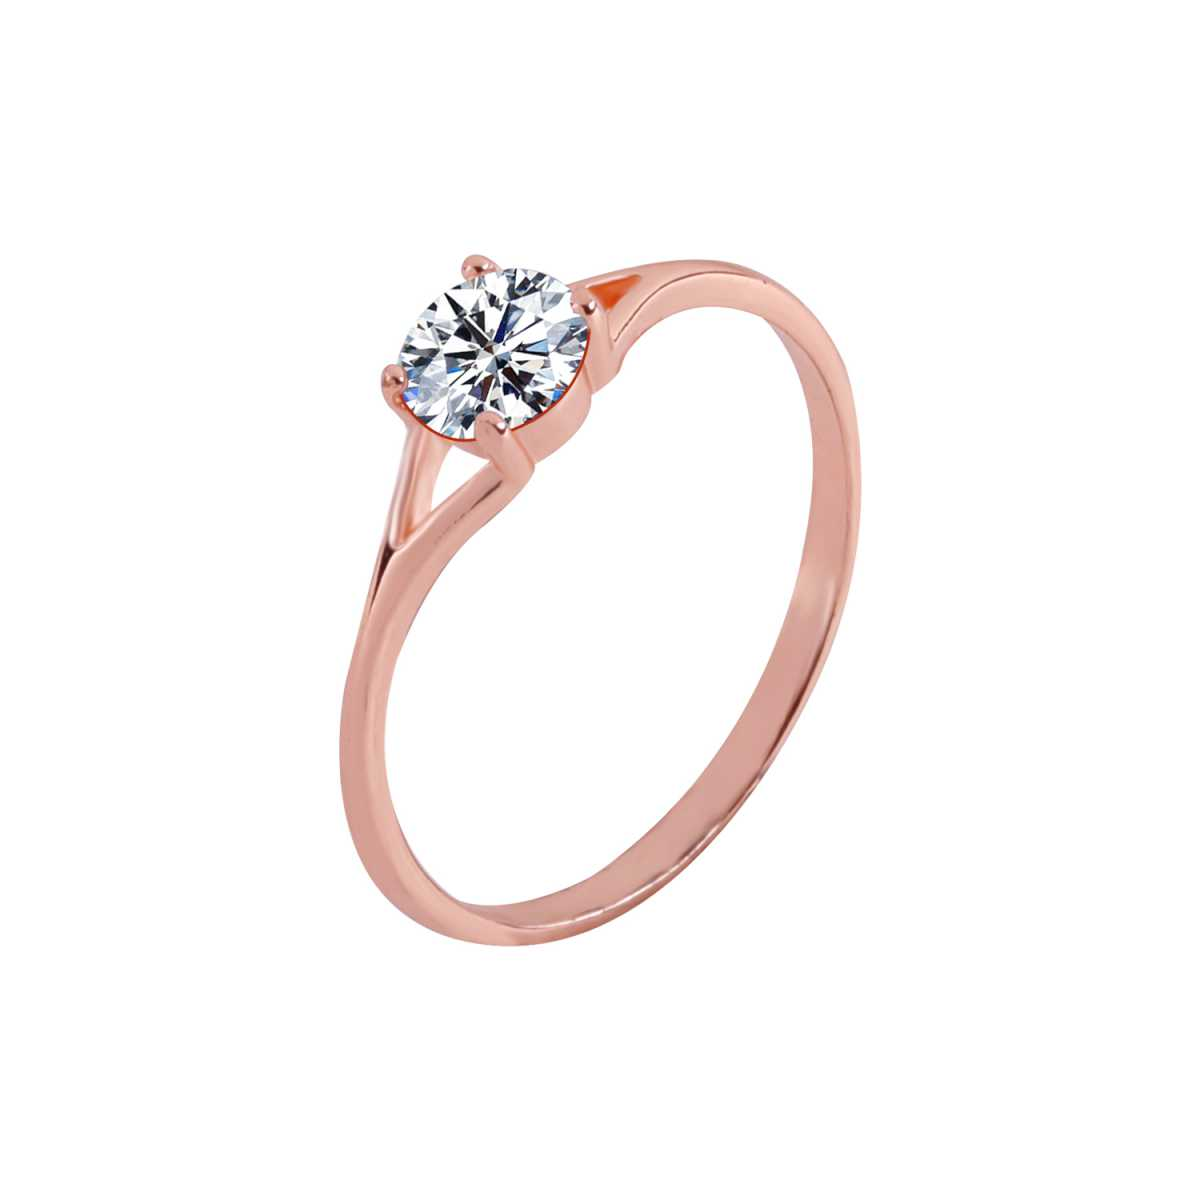 Silver Shine Rose Gold Plated Elegant Classic Crystal Solitaire Ring for Girls and women,wedding ring,jewelry,diamonds,fashion jewelry,couple rings .